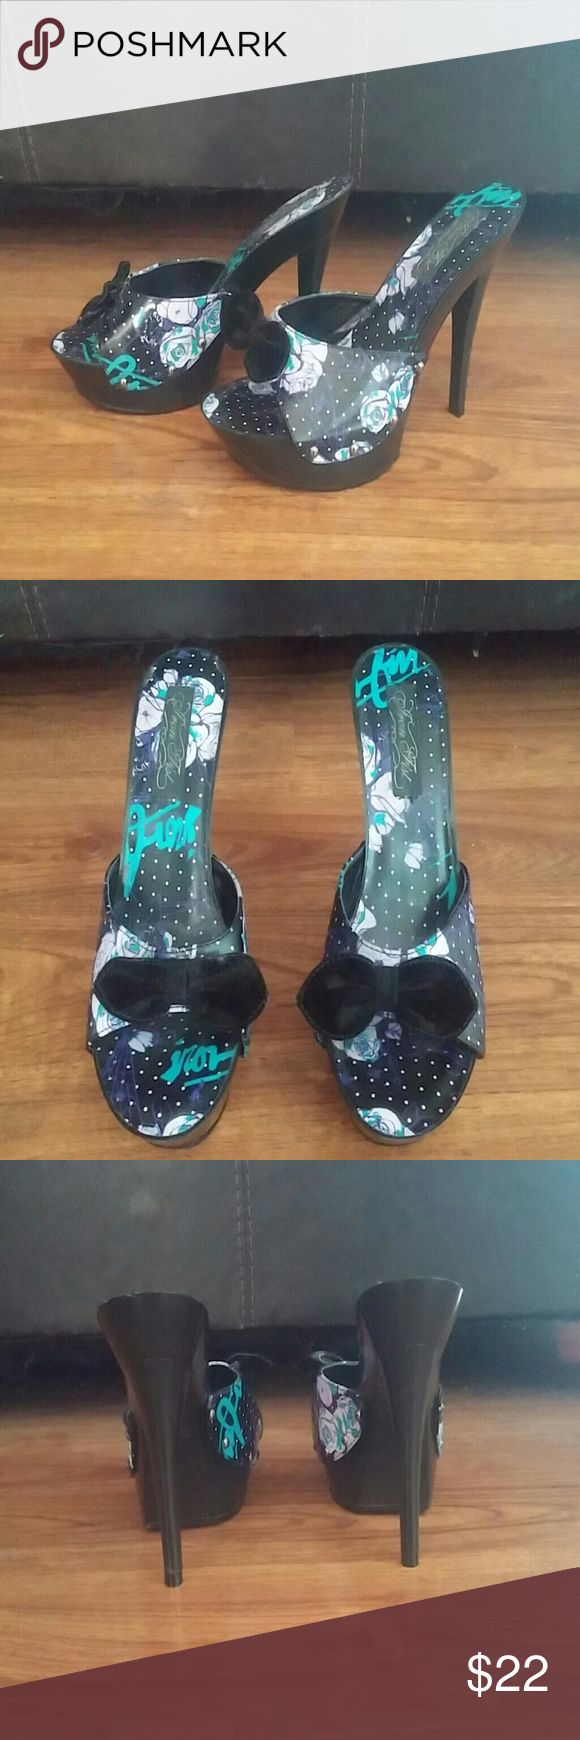 FINAL PRICE Iron Fist Platform Heels BRAND NEW never worn before black Iron Fist heels with white polka dots and purple and blue rose floral pattern. Also has small black velvet bows! Iron Fist Shoes Heels